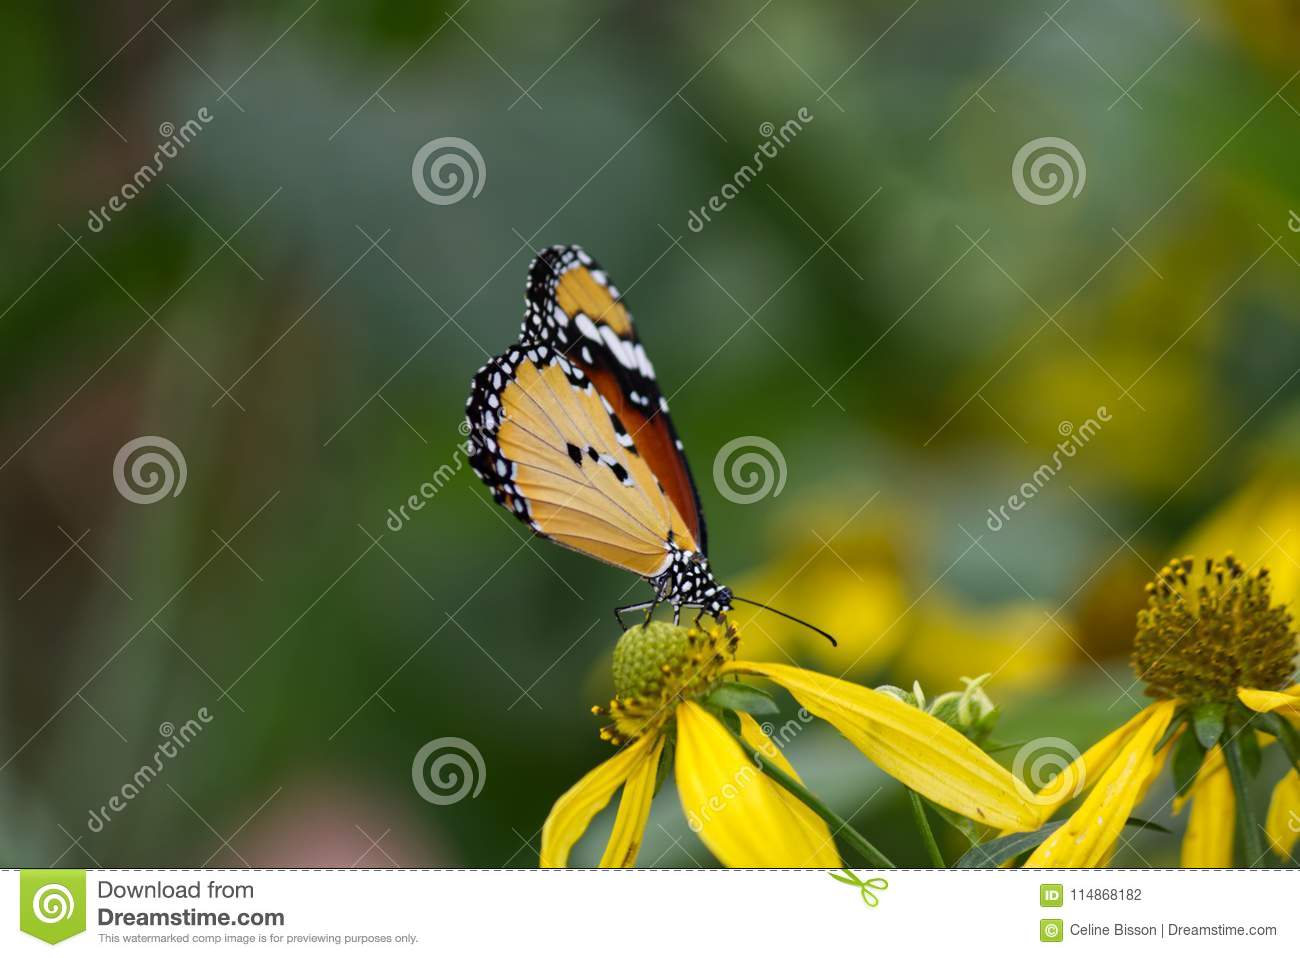 Close-up of an African Monarch Butterfly